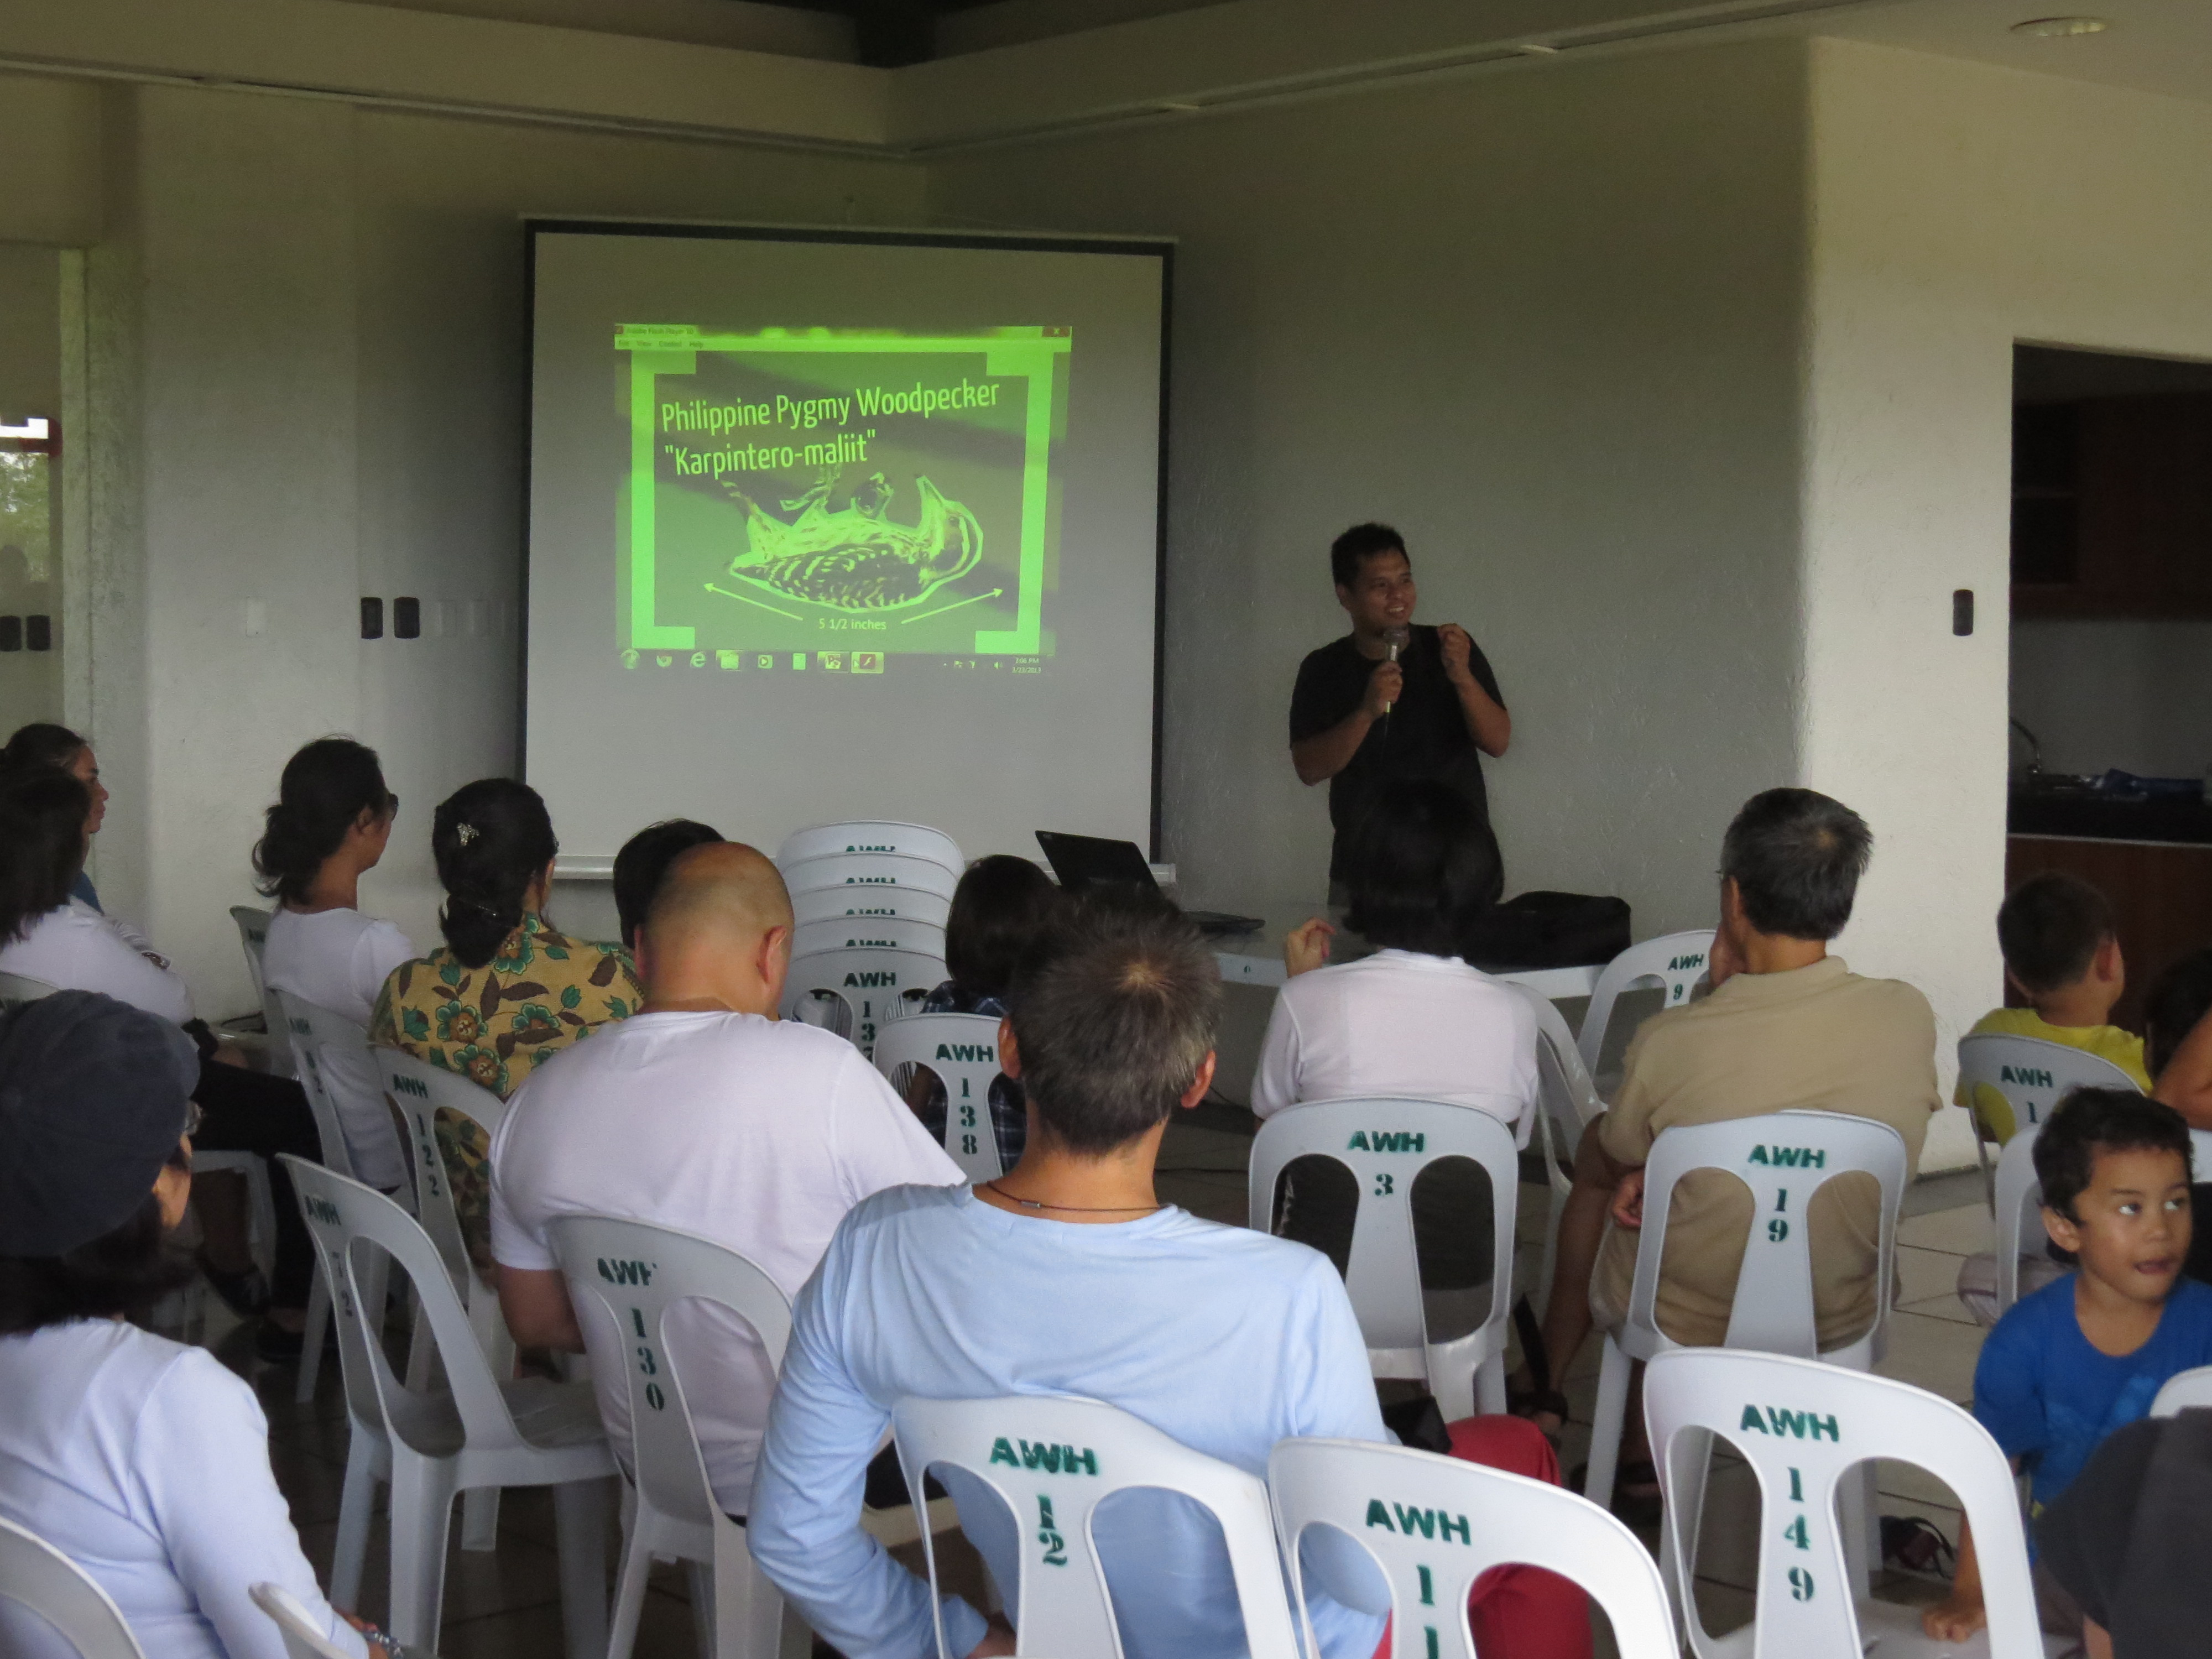 Jops Josef gives an introductory talk about some of the birds that can be seen in the neighborhood. Photo by Maia Tanedo.